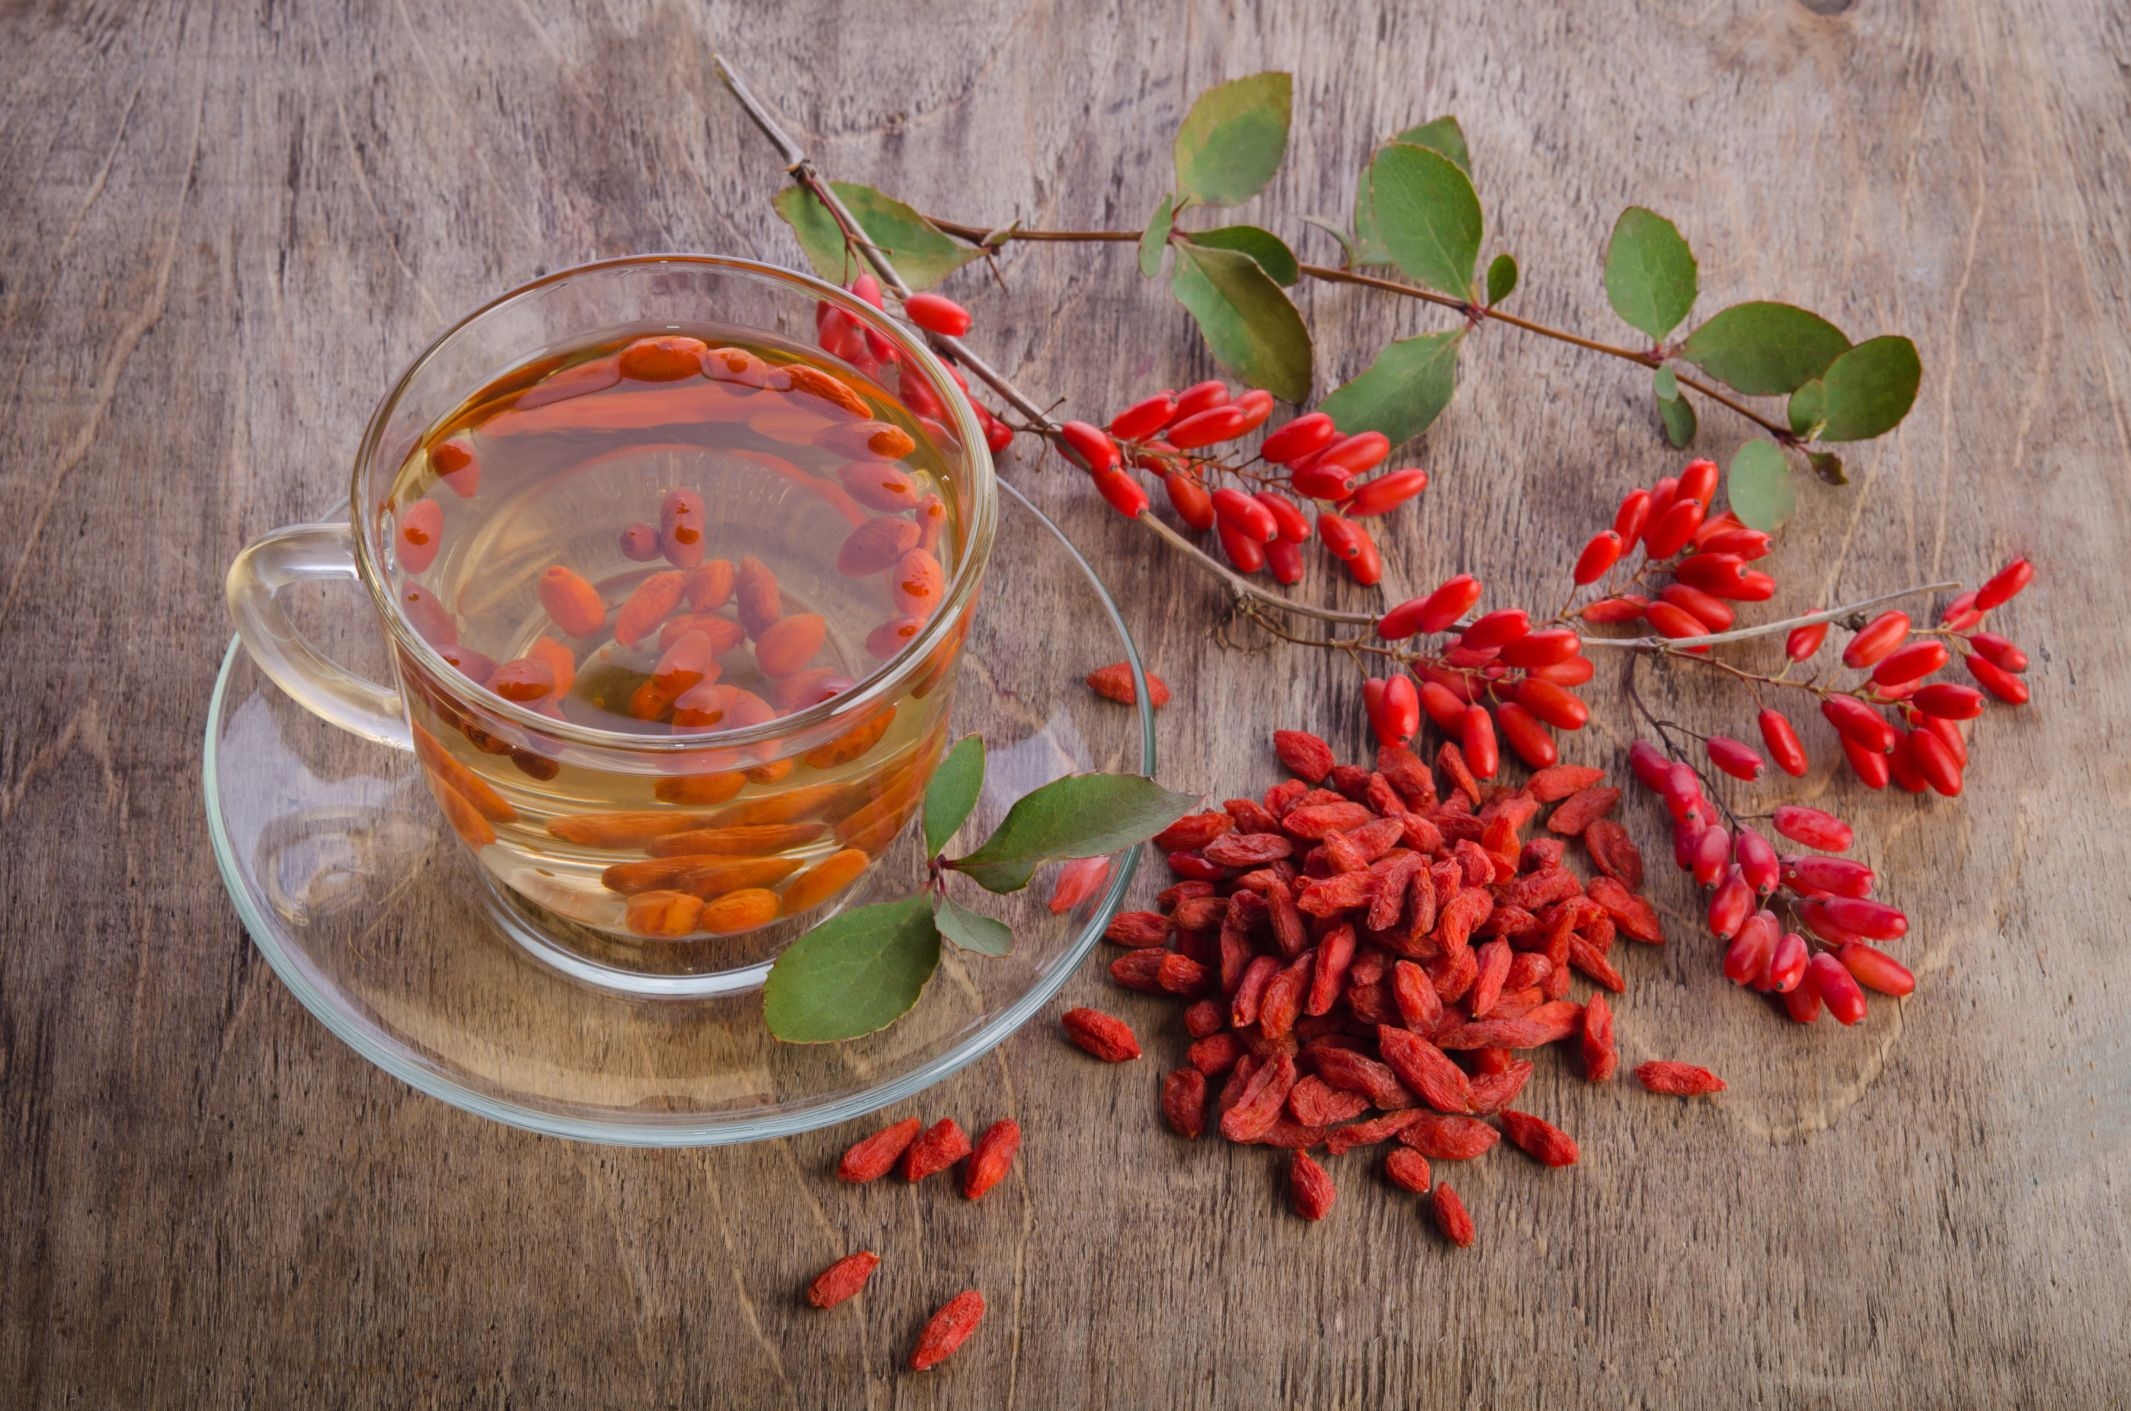 Goji Tea Benefits Goji Berries Tea Benefits Dried Goji Berries